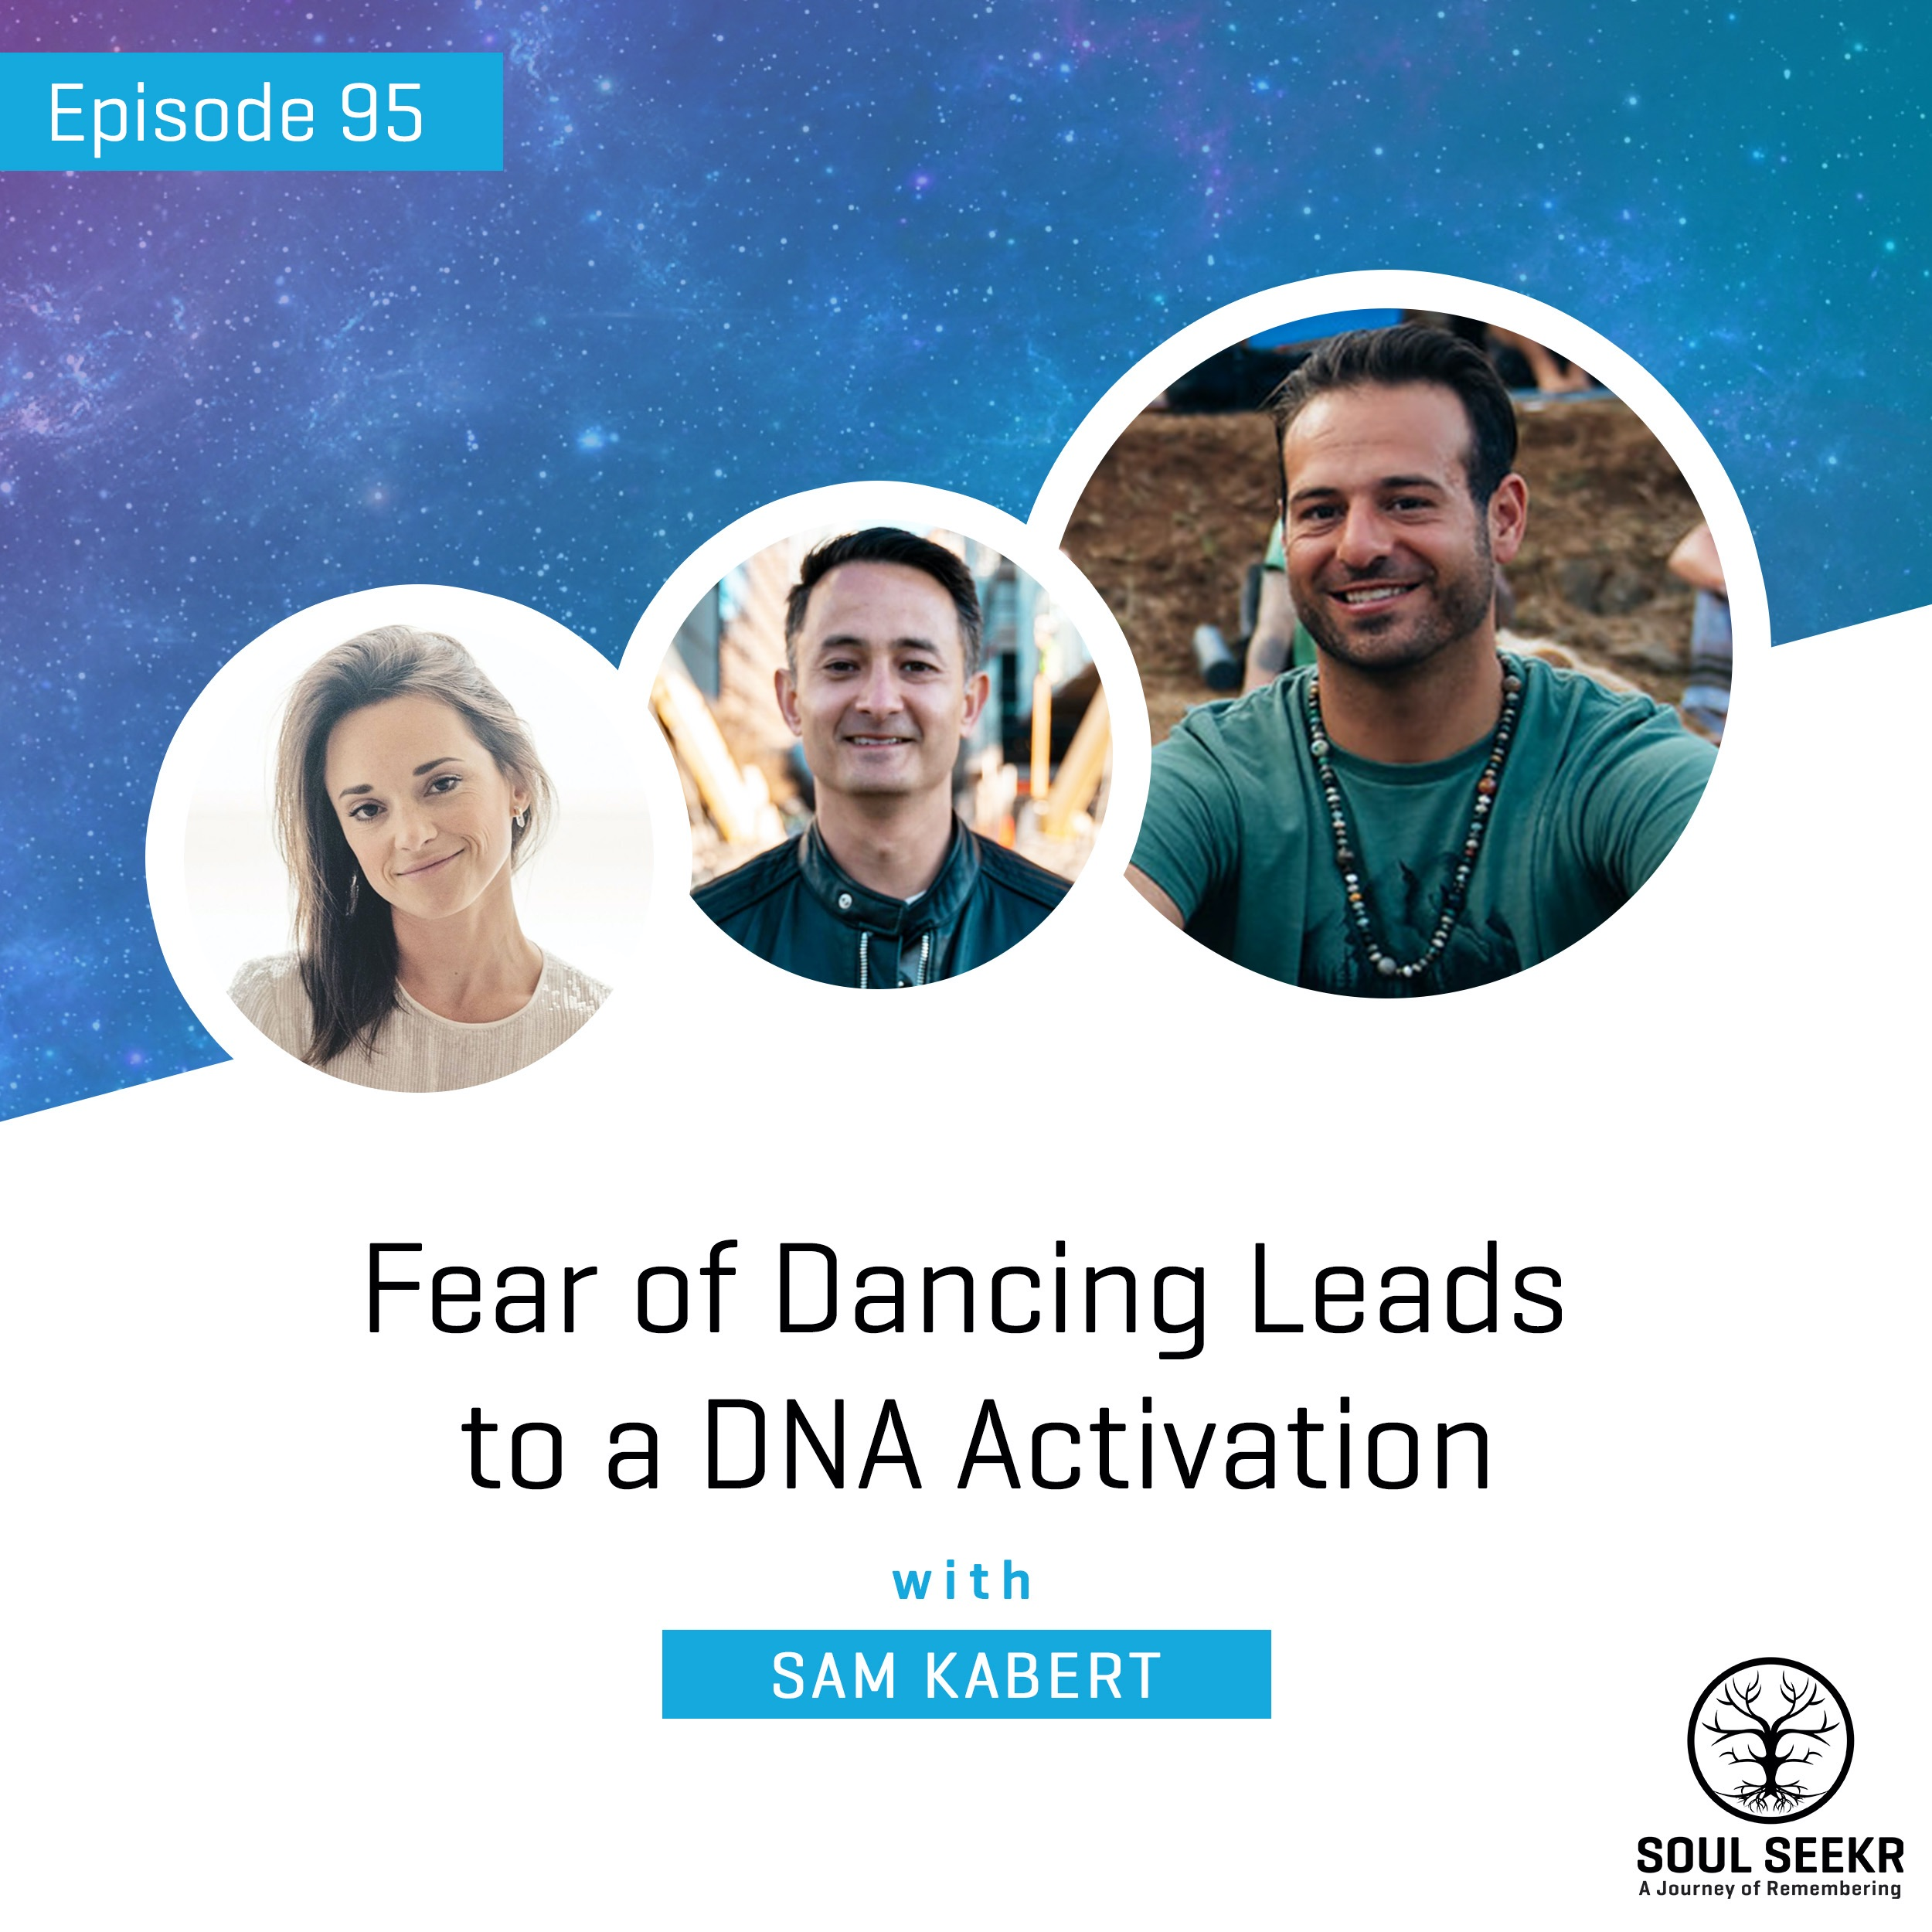 #95: Fear of Dancing Leads to a DNA Activation with Sam Kabert